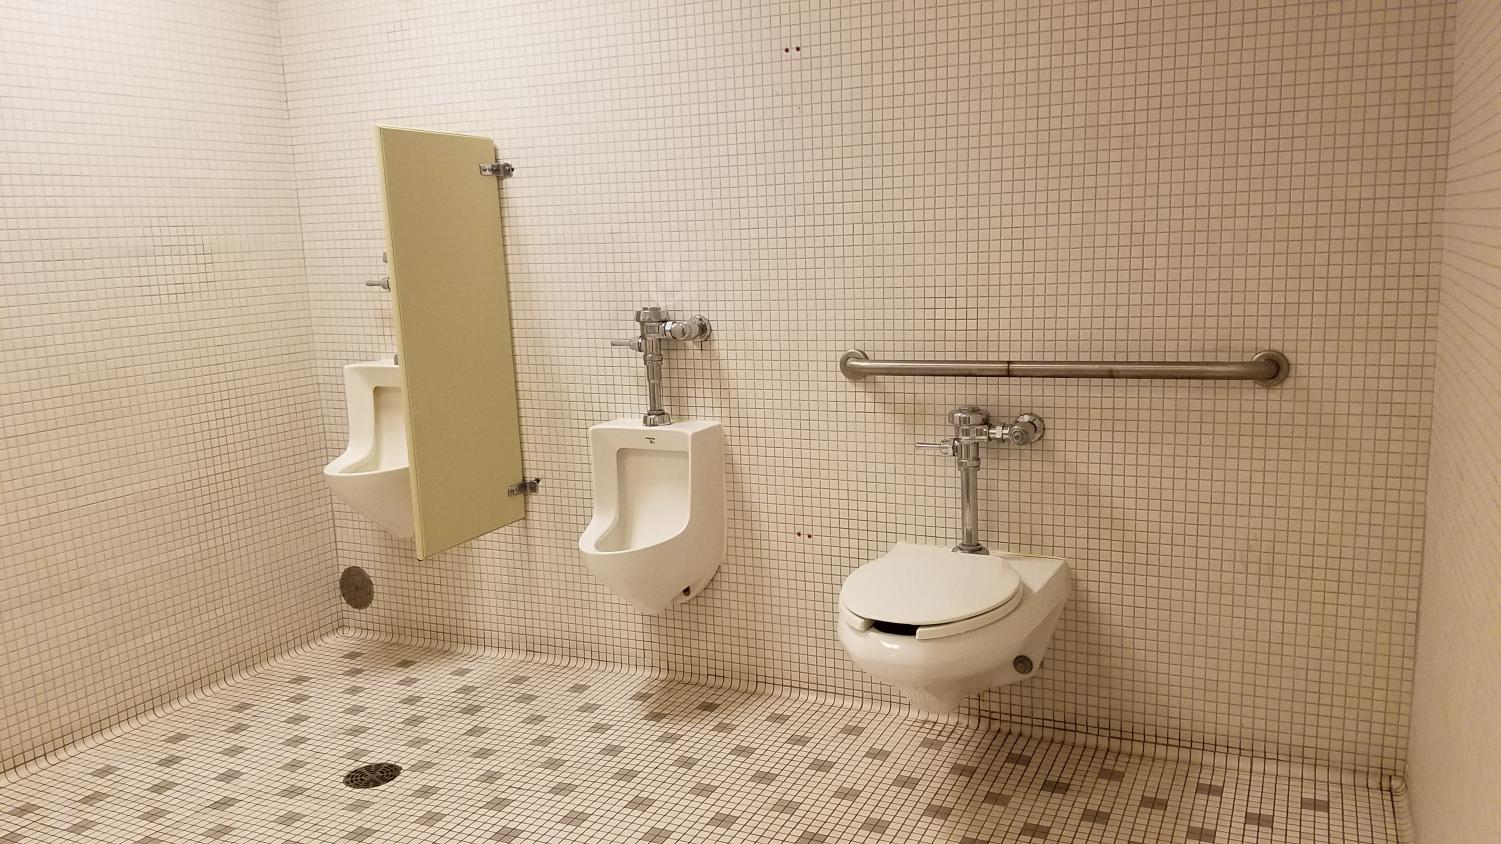 The men's bathroom without  stalls has been the cause of confusion for many students.